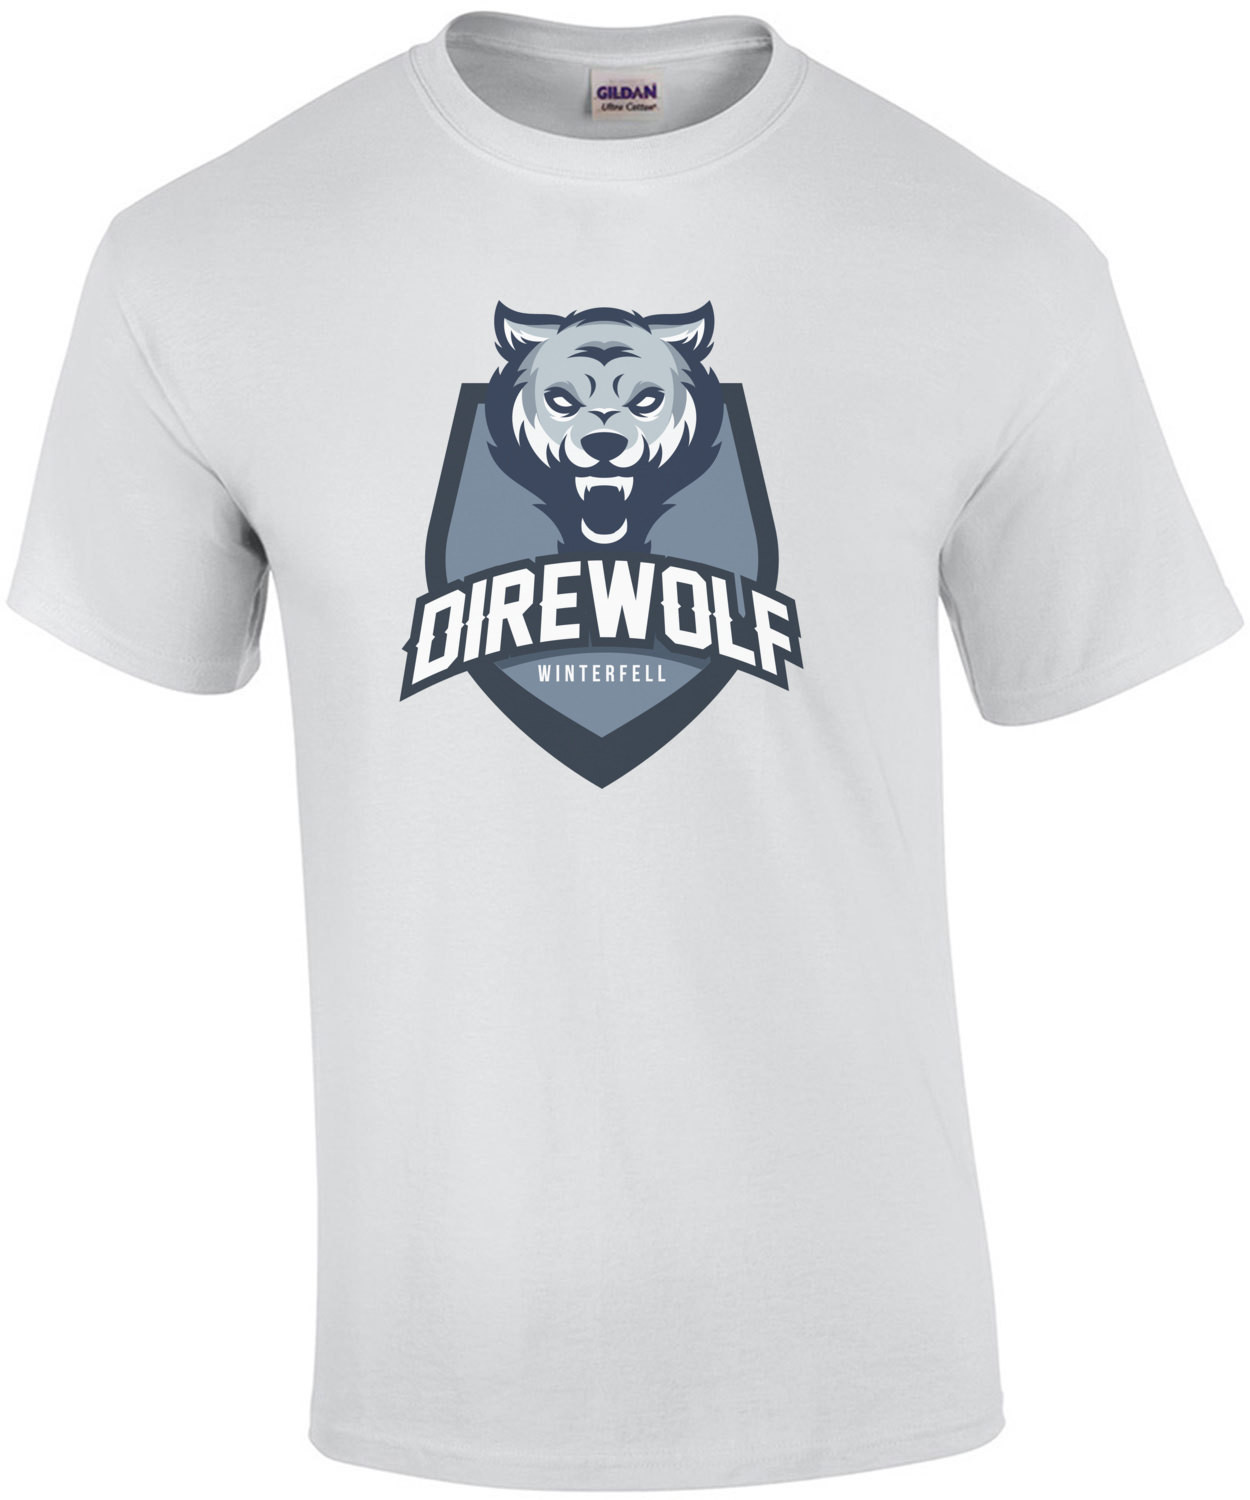 Direwolf - Winterfell - Game of Thrones T-Shirt